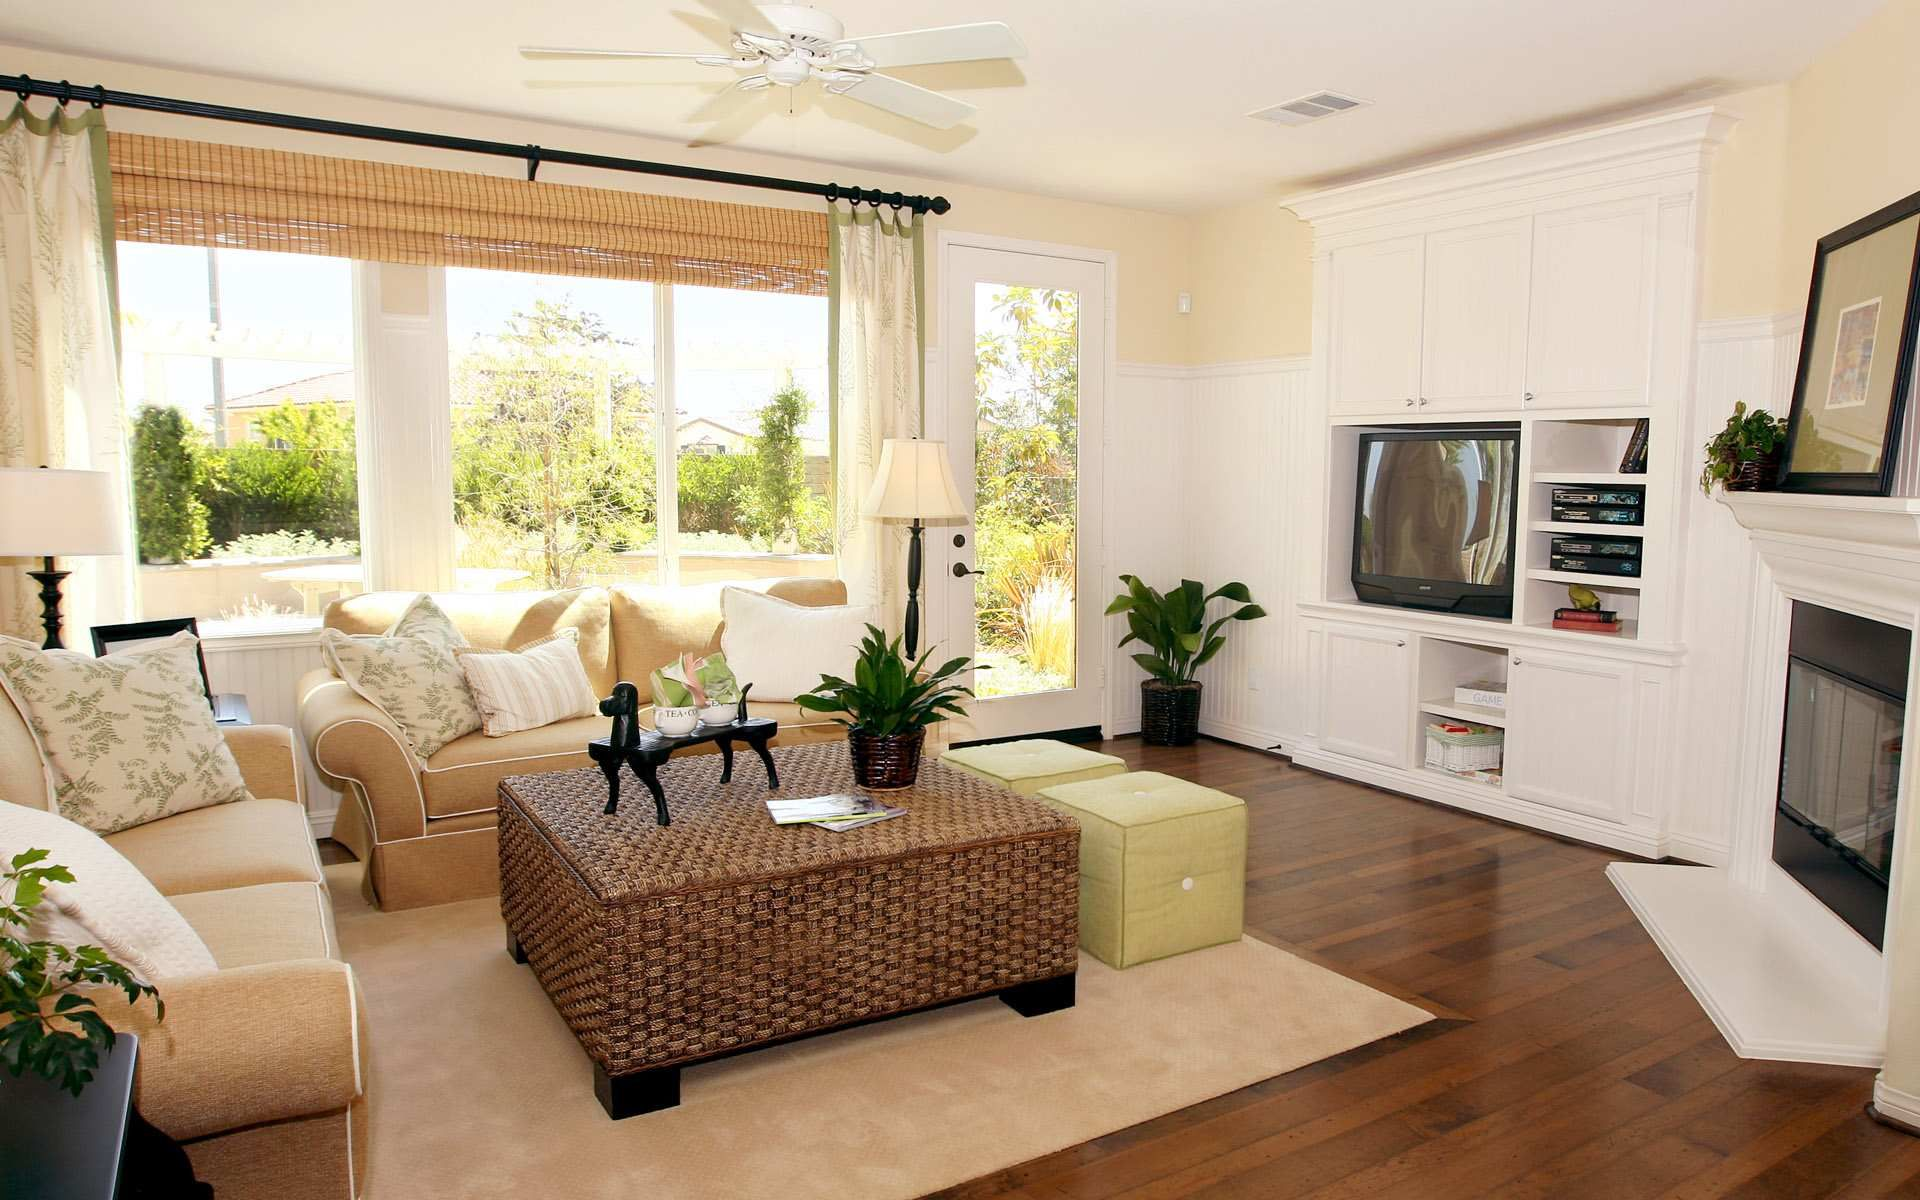 Google Image Result For Http://themaisonette.net/wp Content/uploads/2012 /10/Blog Archive Soft Looking Living Room Home Interior Design Ideas